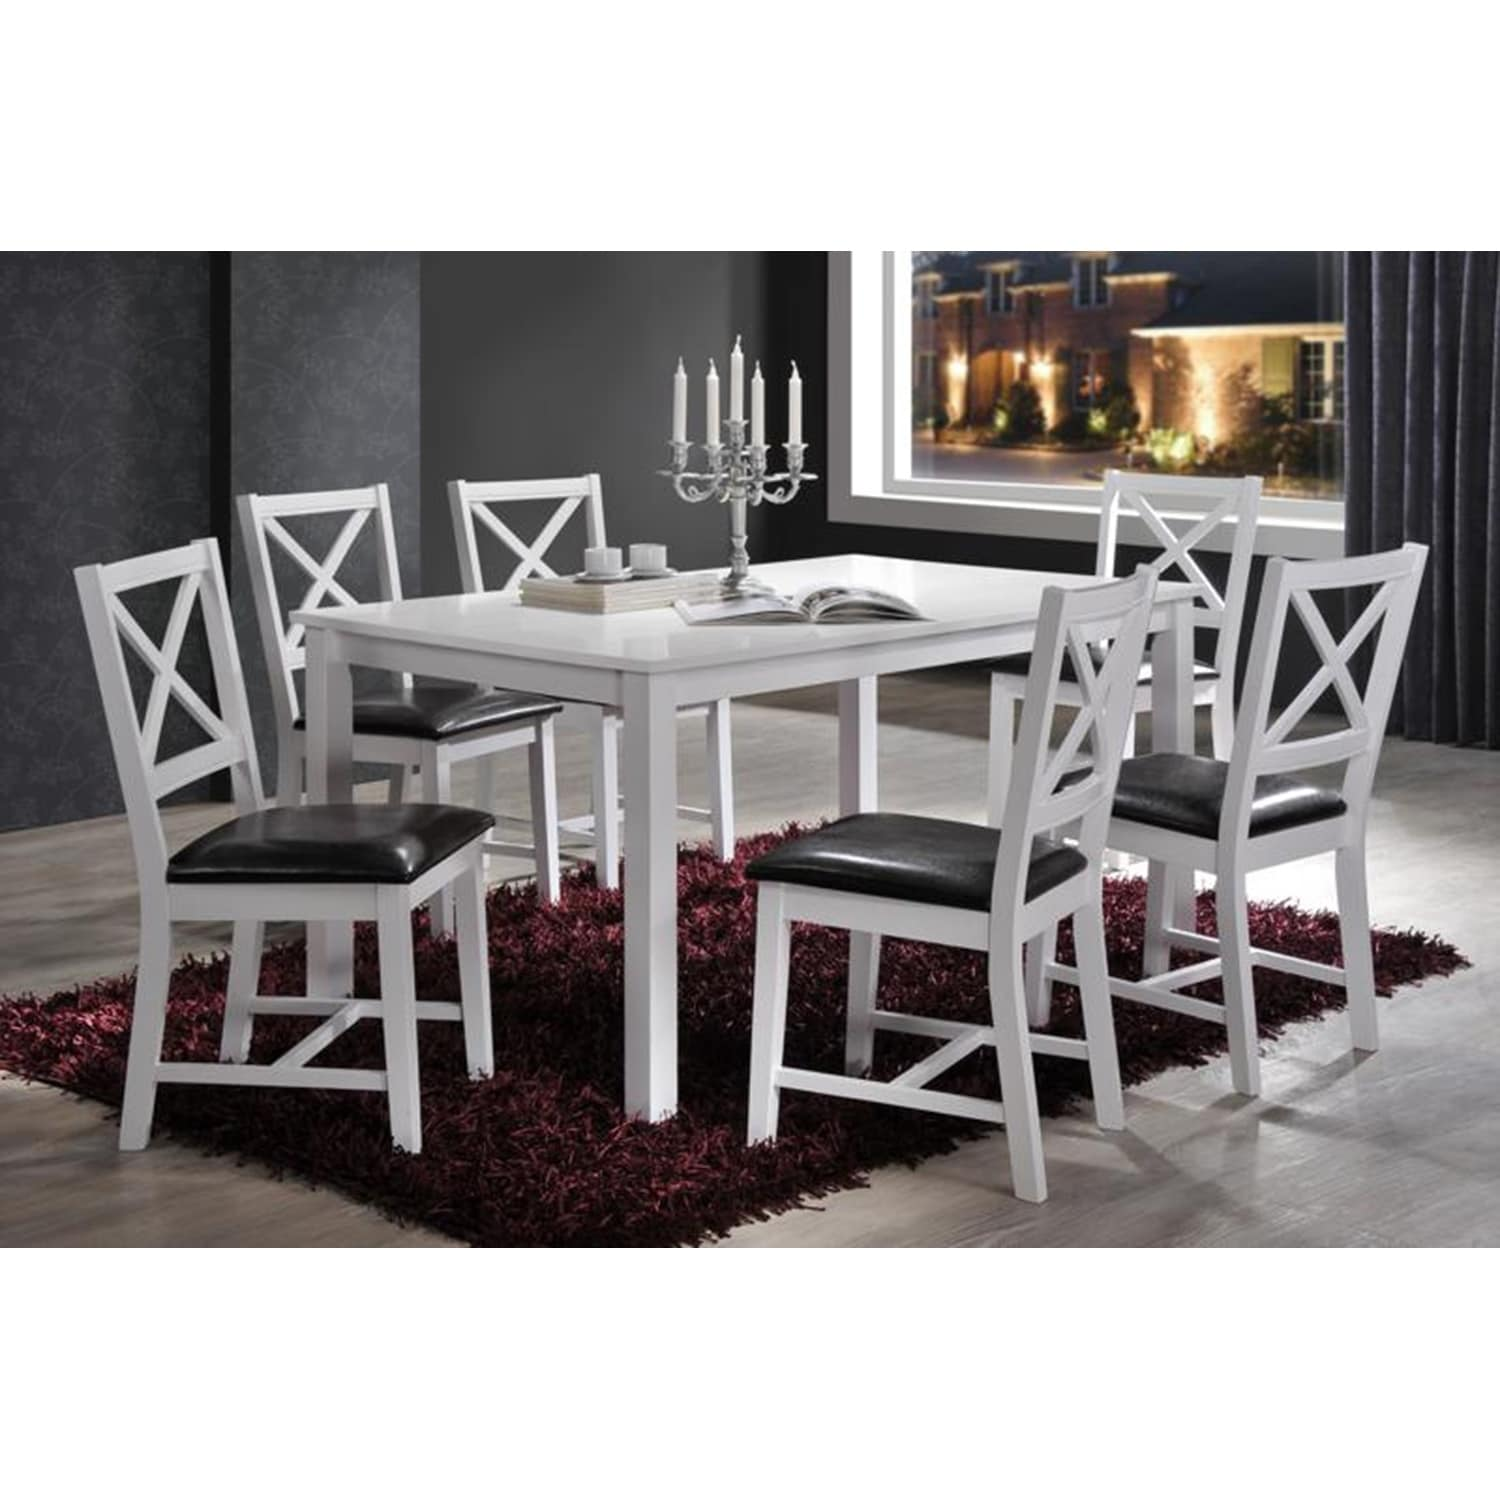 Indoor White And Black Cross Back 7pc Dining Set With A Solid Wood Rectangular Dining Table And 6 Upholstered Dining Chairs On Sale Overstock 23506683